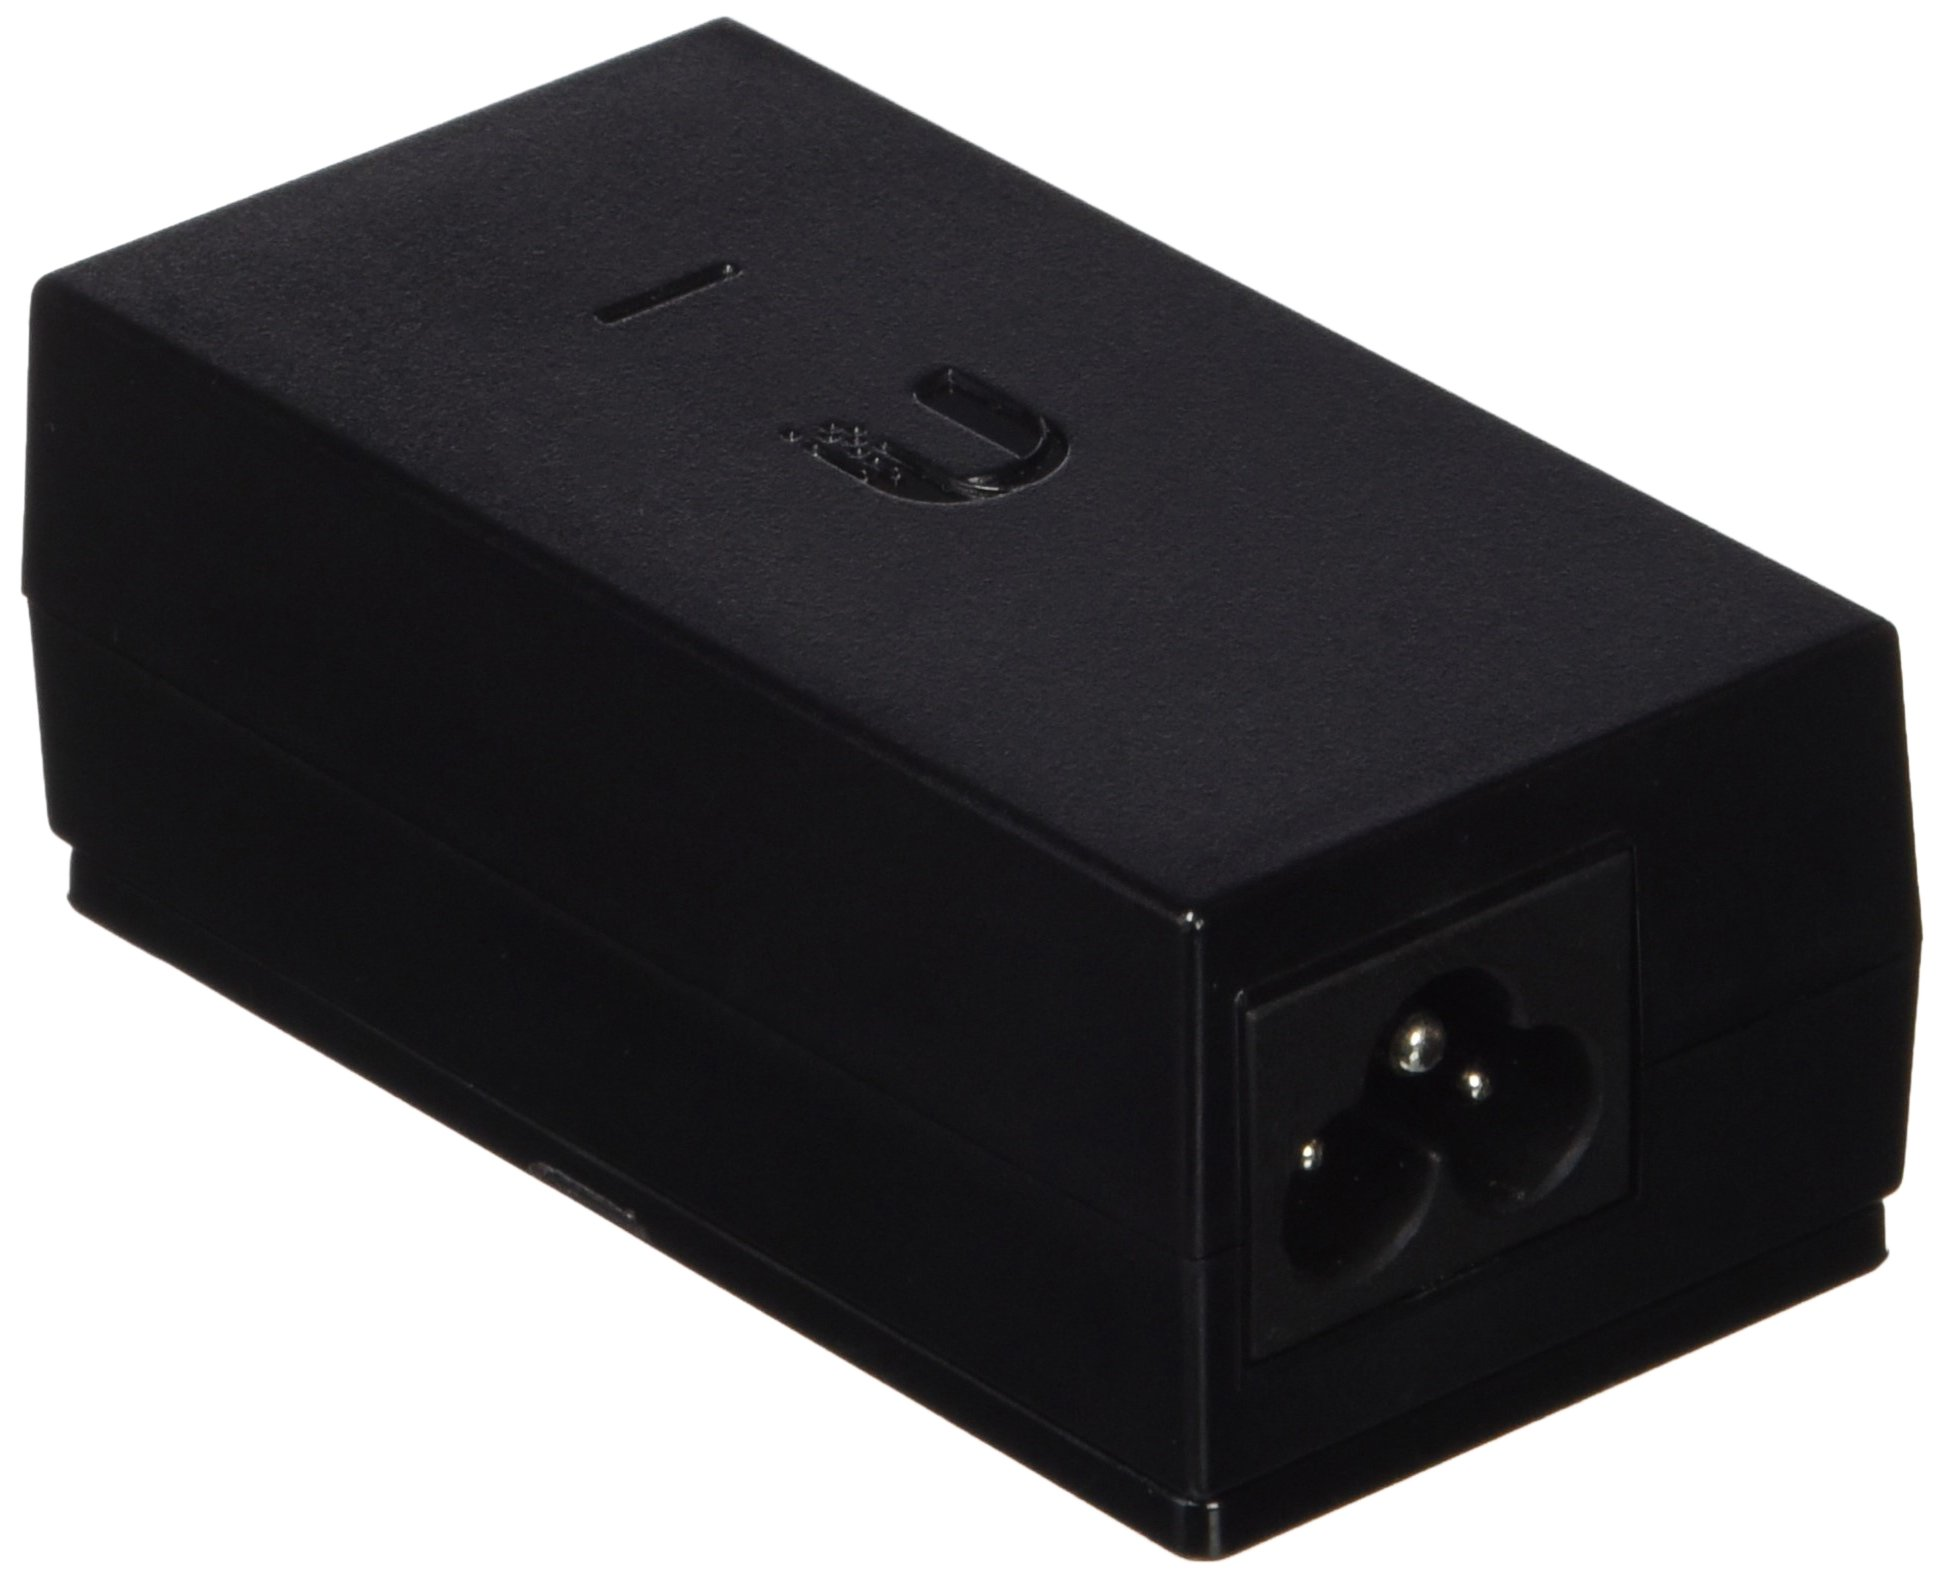 Ubiquiti PoE-24 Passive PoE Adapter EU, 24V 0.5A, grounding/ESD protection, 12W by Ubiquiti Networks (Image #1)